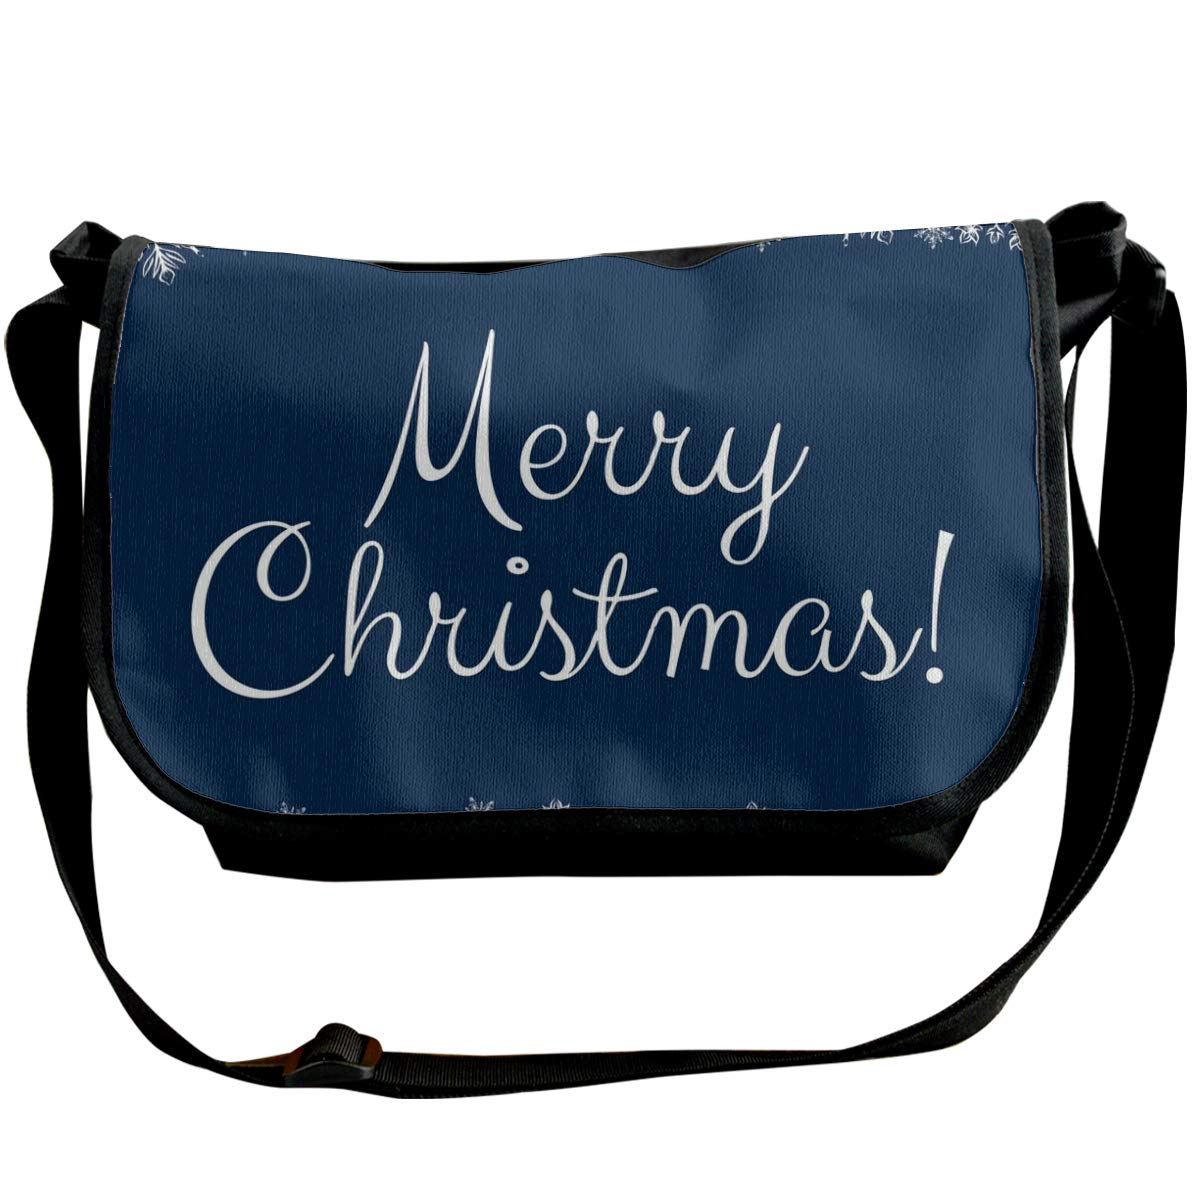 Taslilye Christmas Card With Snowflakes Vector Image Customized Wide Crossbody Shoulder Bag For Men And Women For Daily Work Or Travel